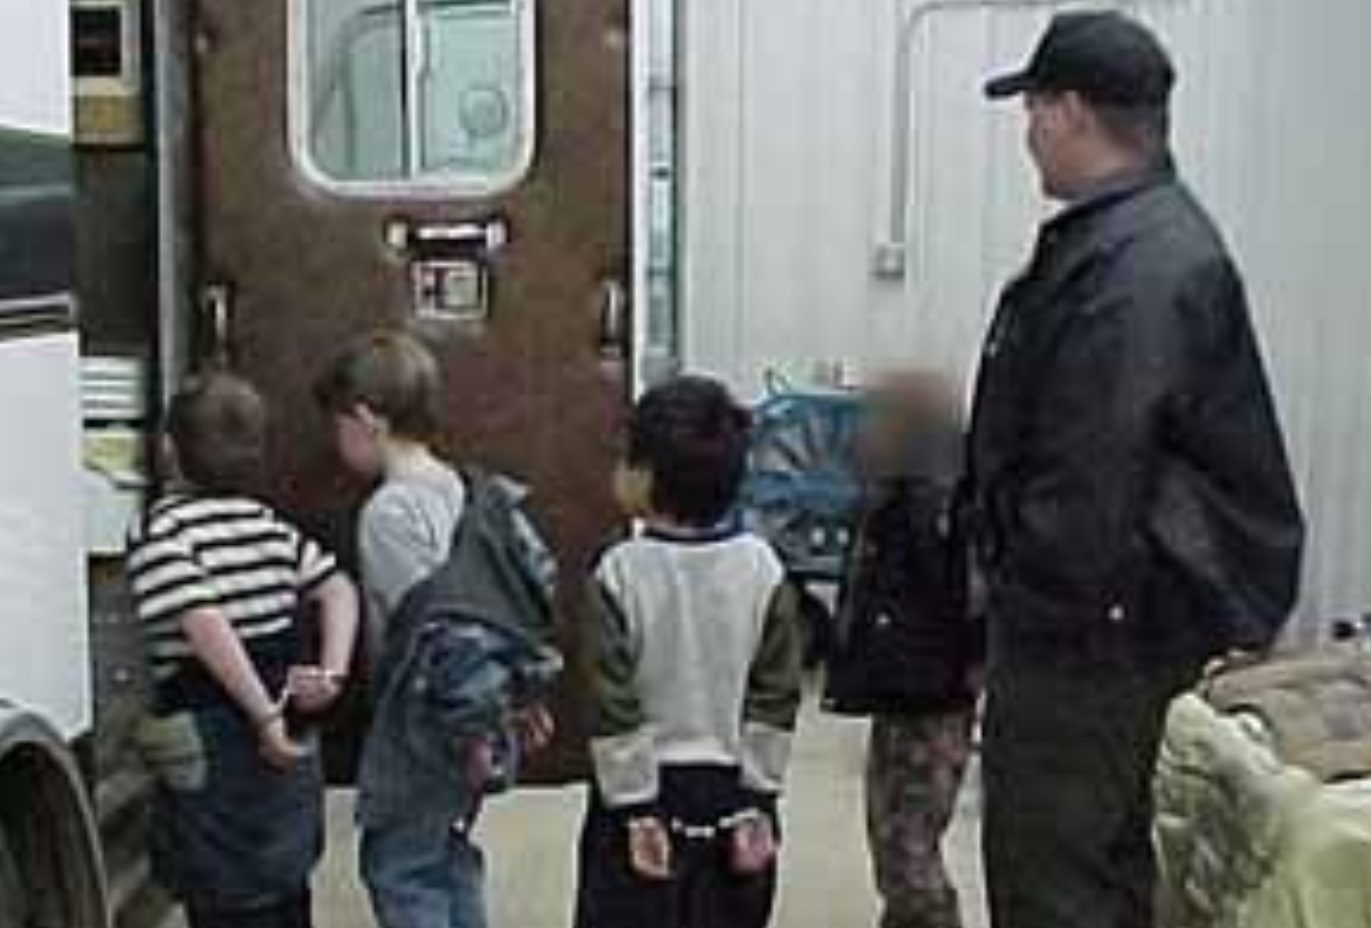 FACT CHECK: Does This Photograph Show ICE Arresting Small Children?